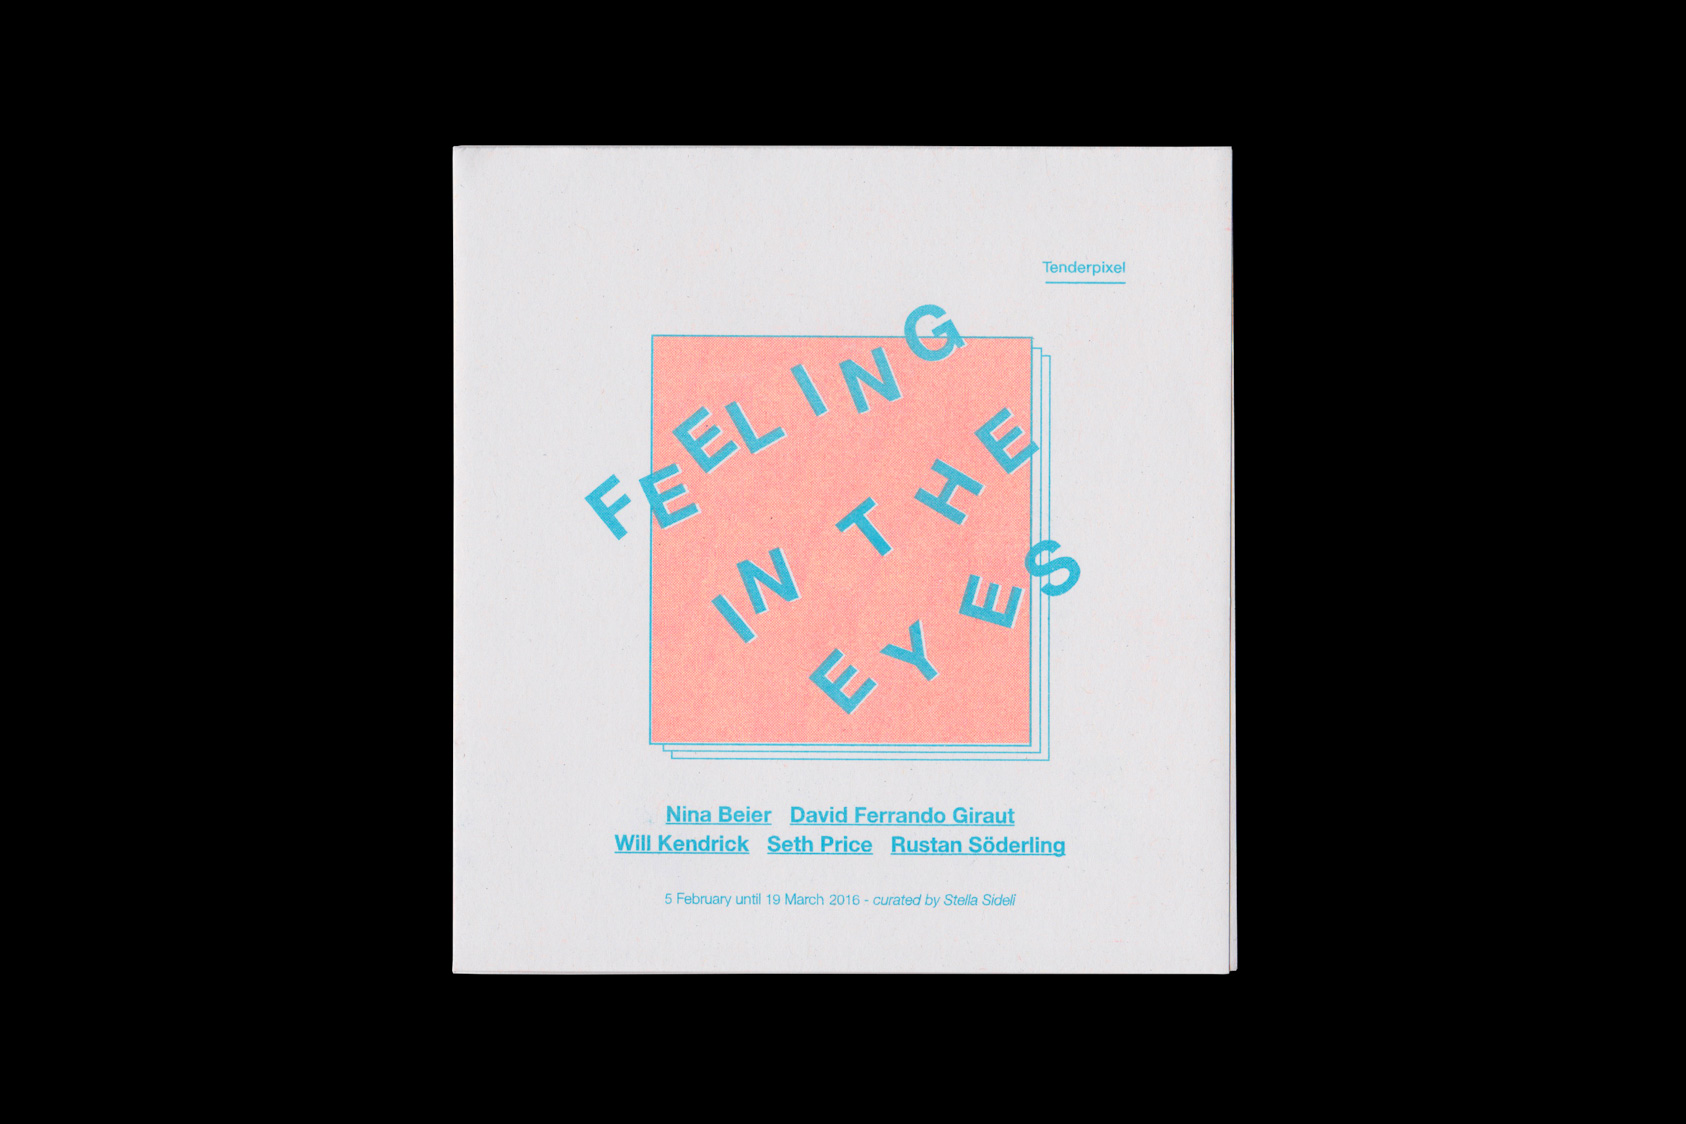 Feeling in the eyes by the agency for emerging ideas